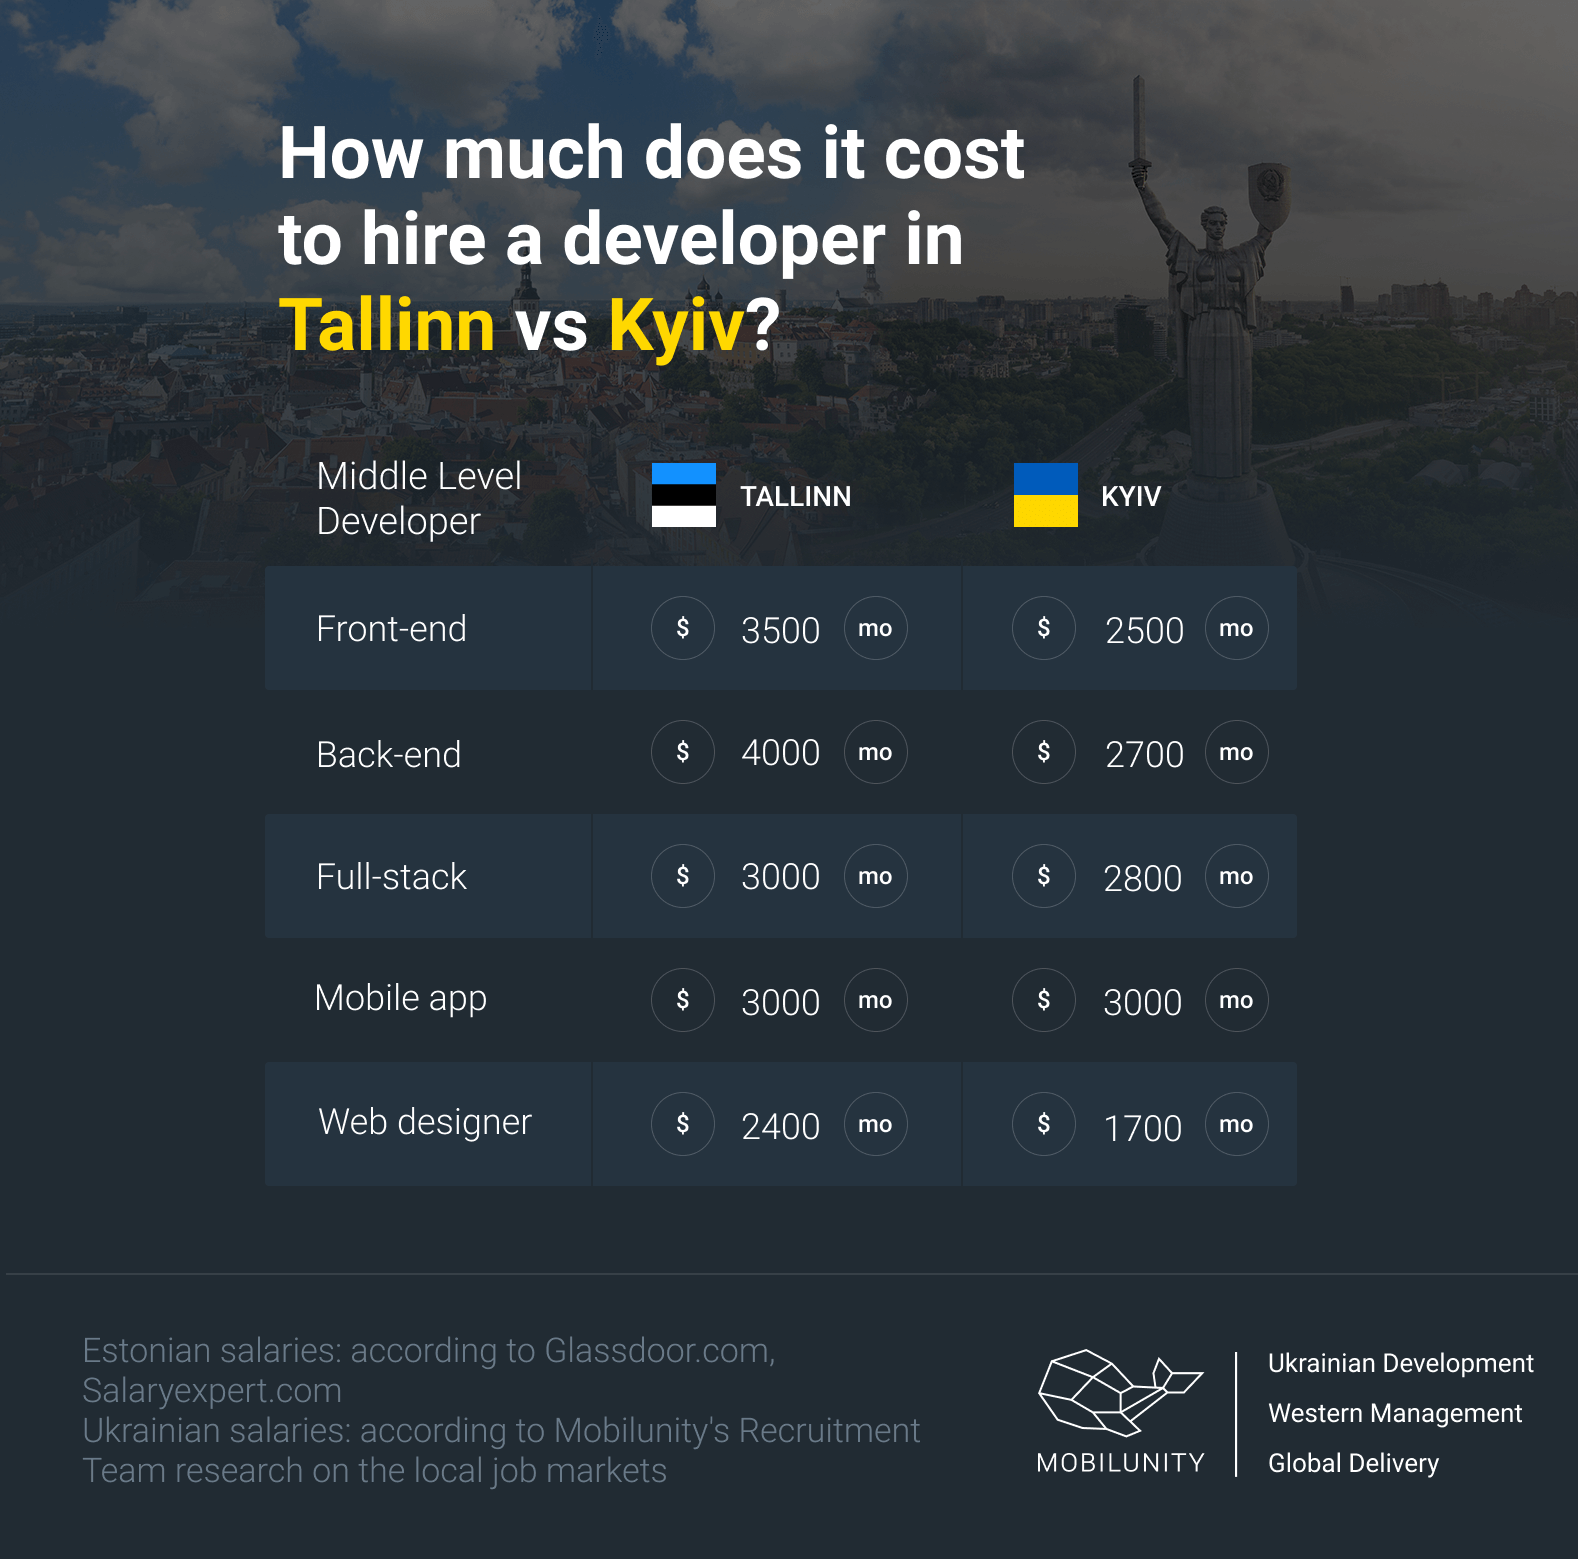 how much does it cost to hire a developer in Tallinn and Kyiv